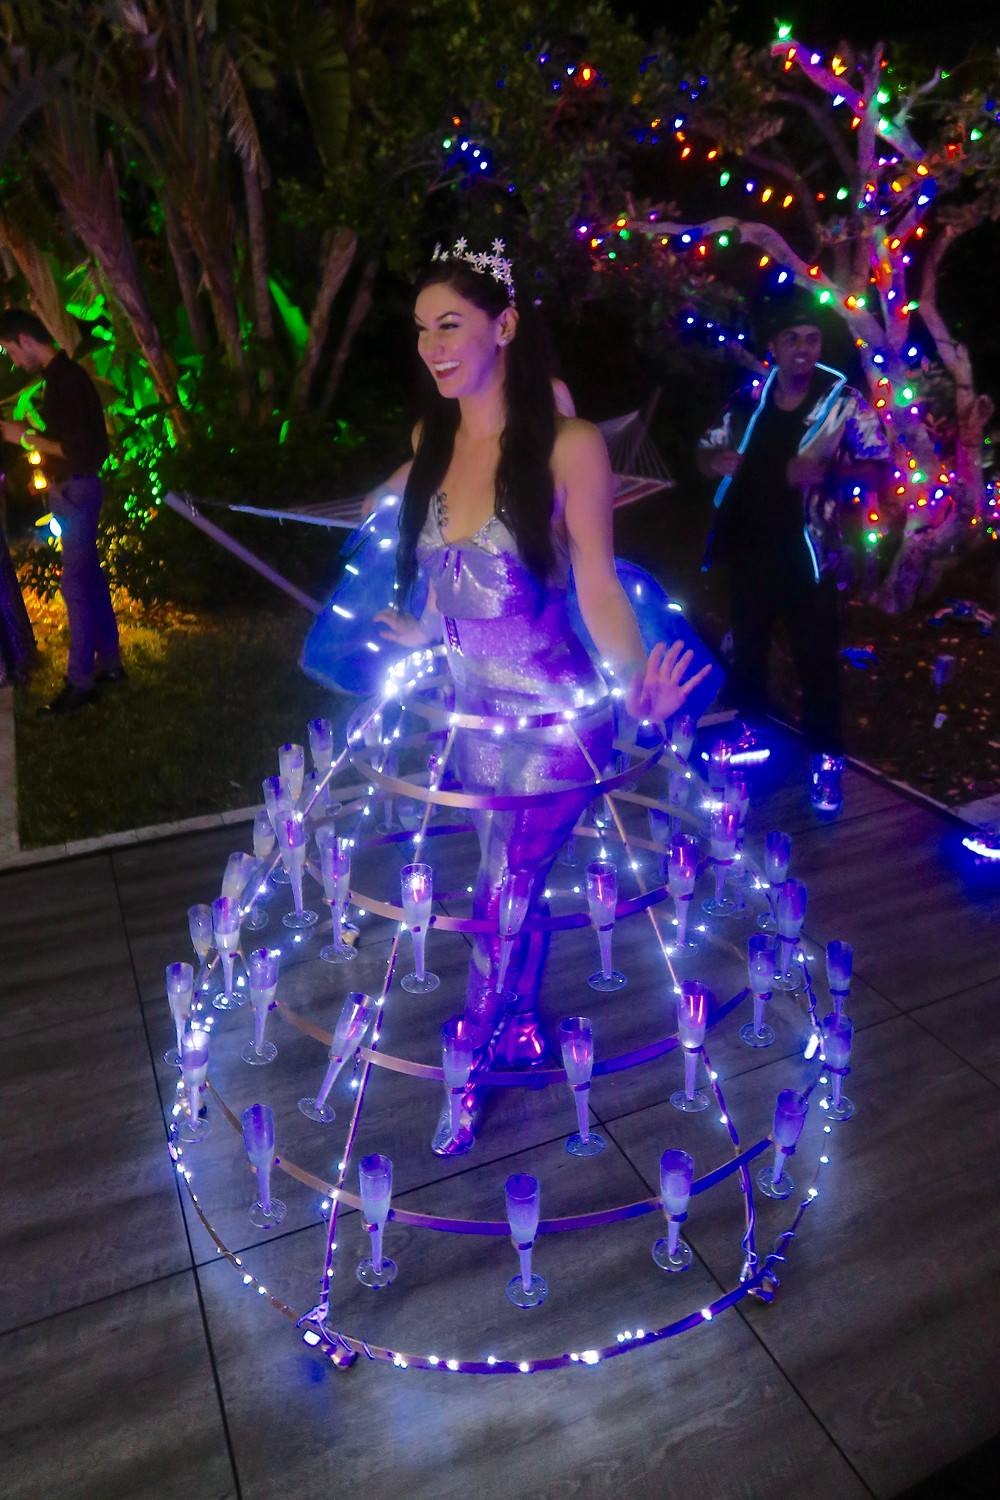 An LED twist on our strolling champagne table, a crowd favorite